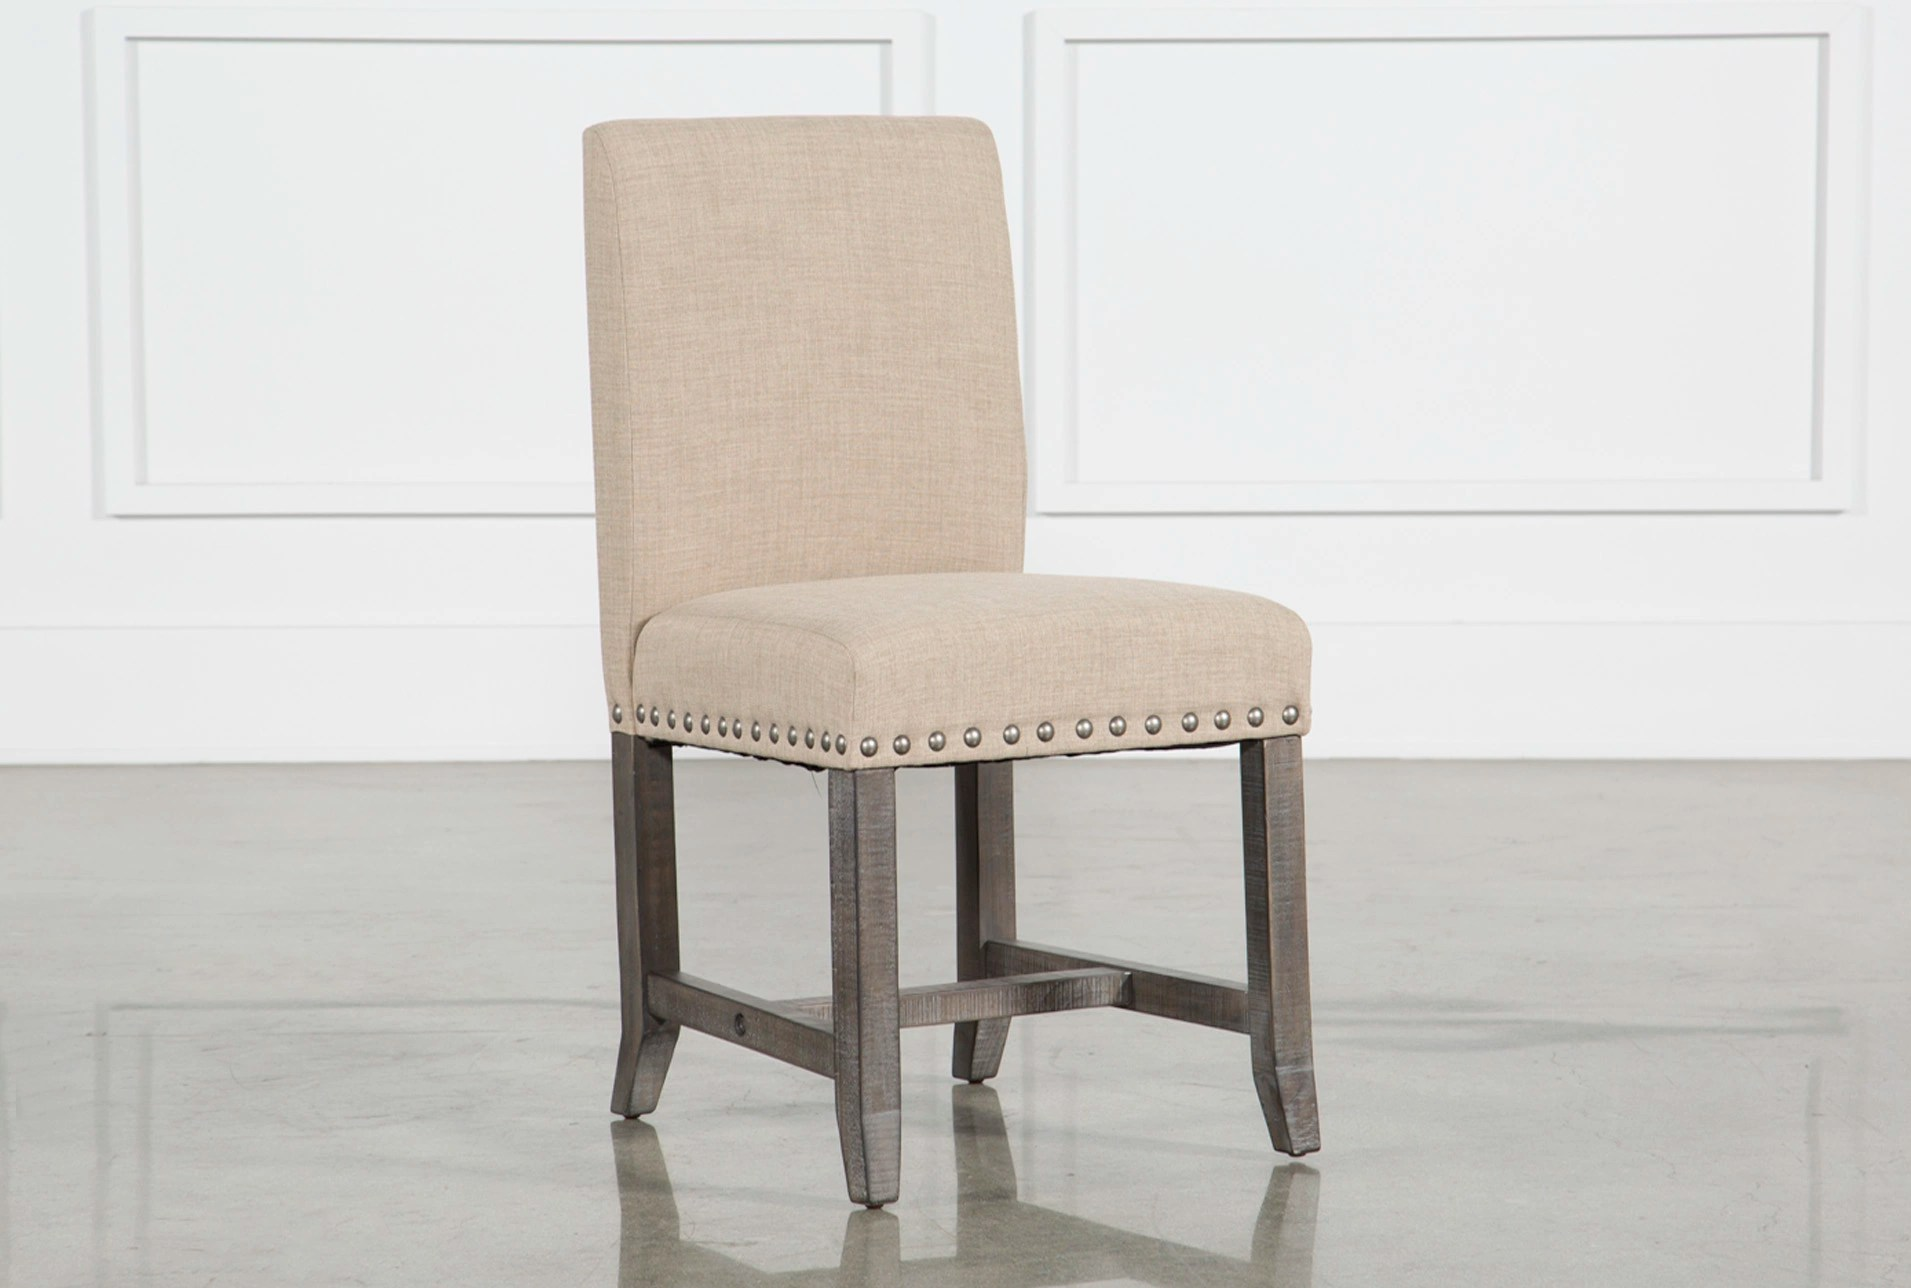 Grey Upholstered Chair Jaxon Grey Upholstered Side Chair Living Spaces